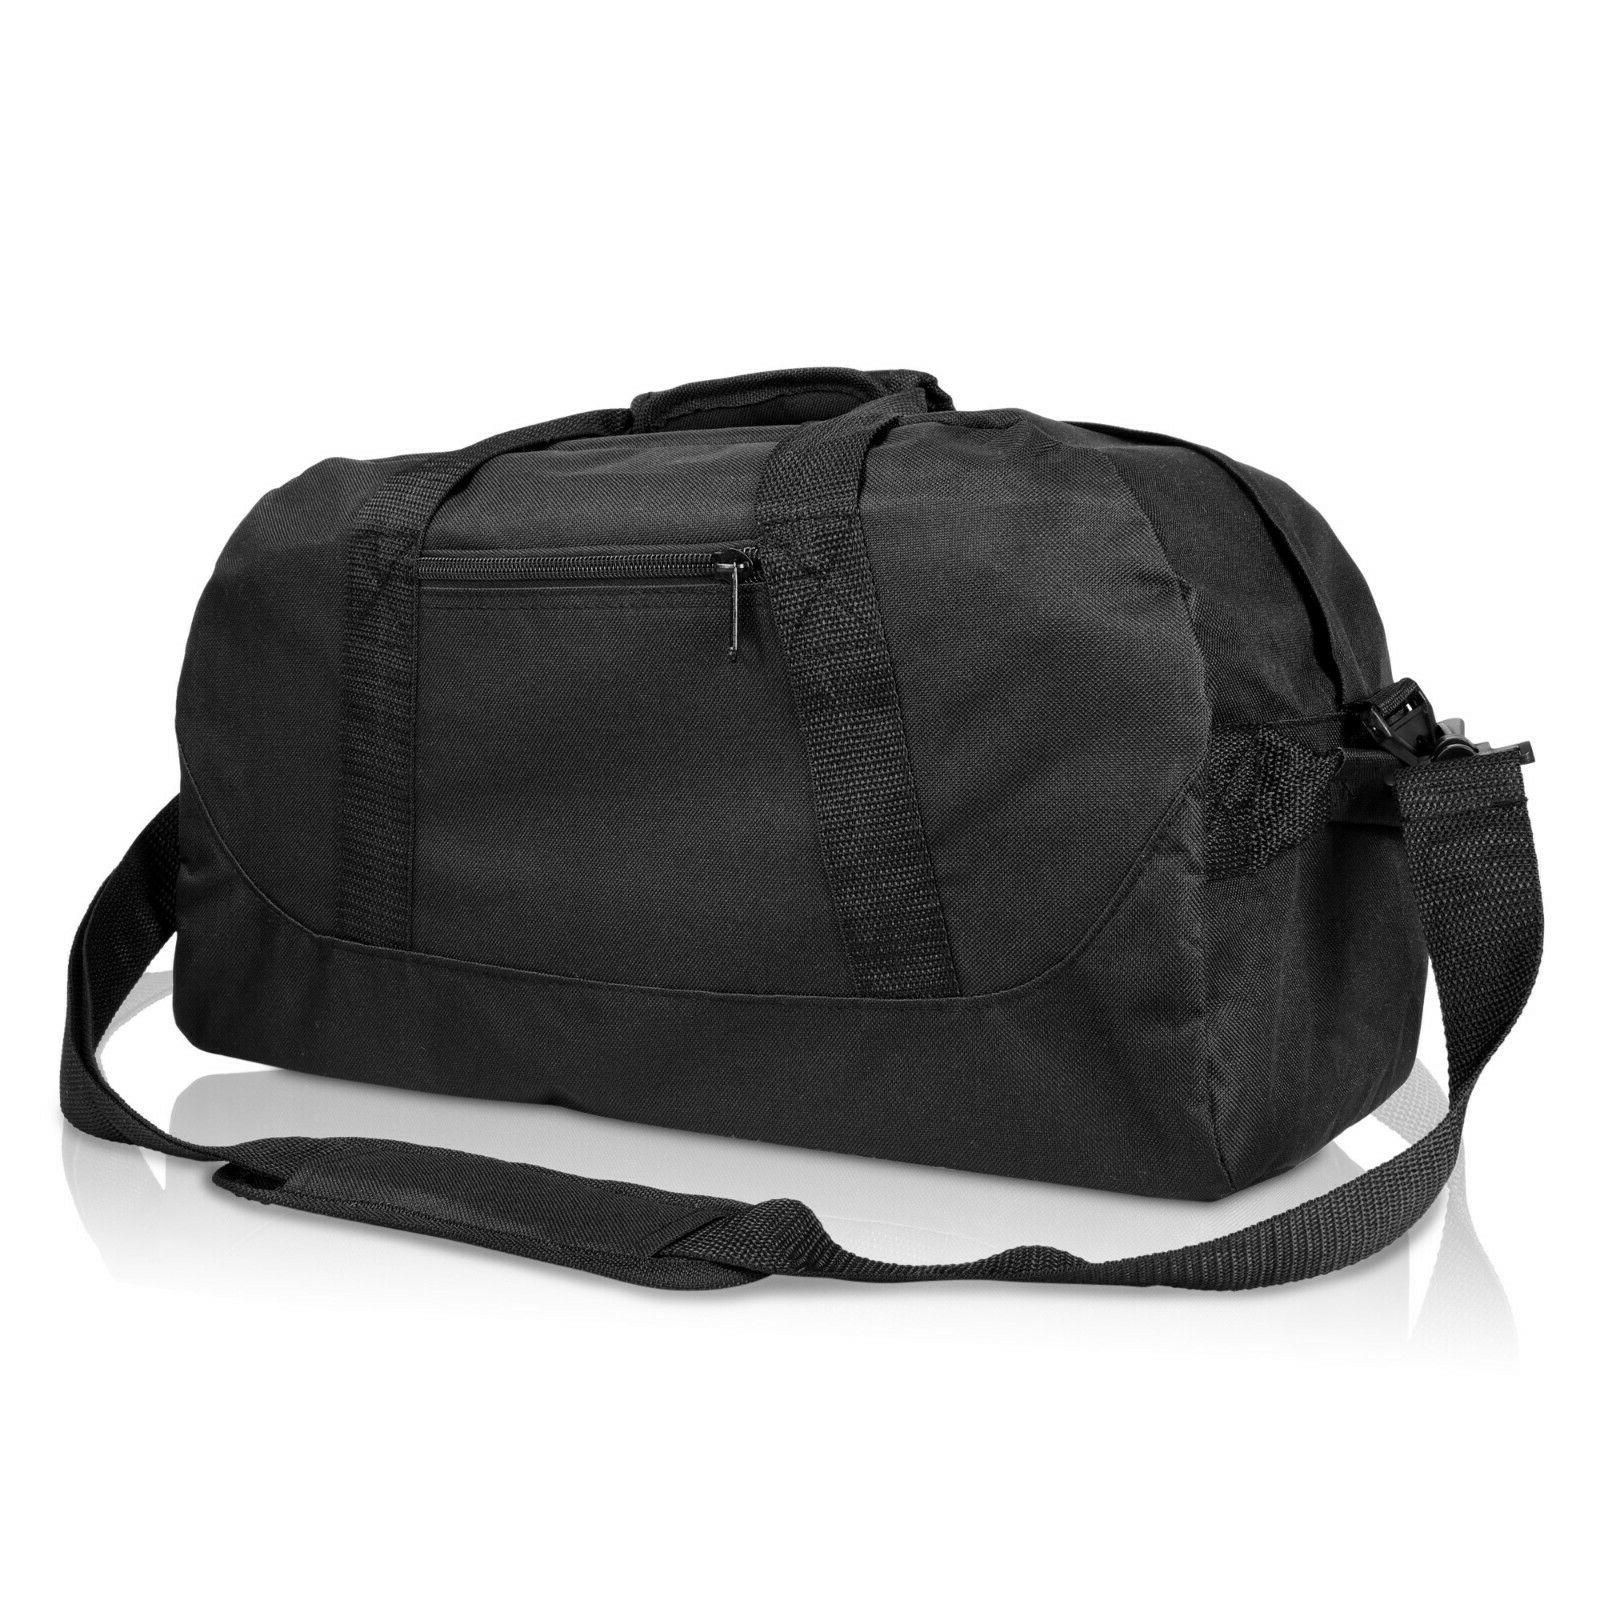 18 medium duffle bag gym sports duffel